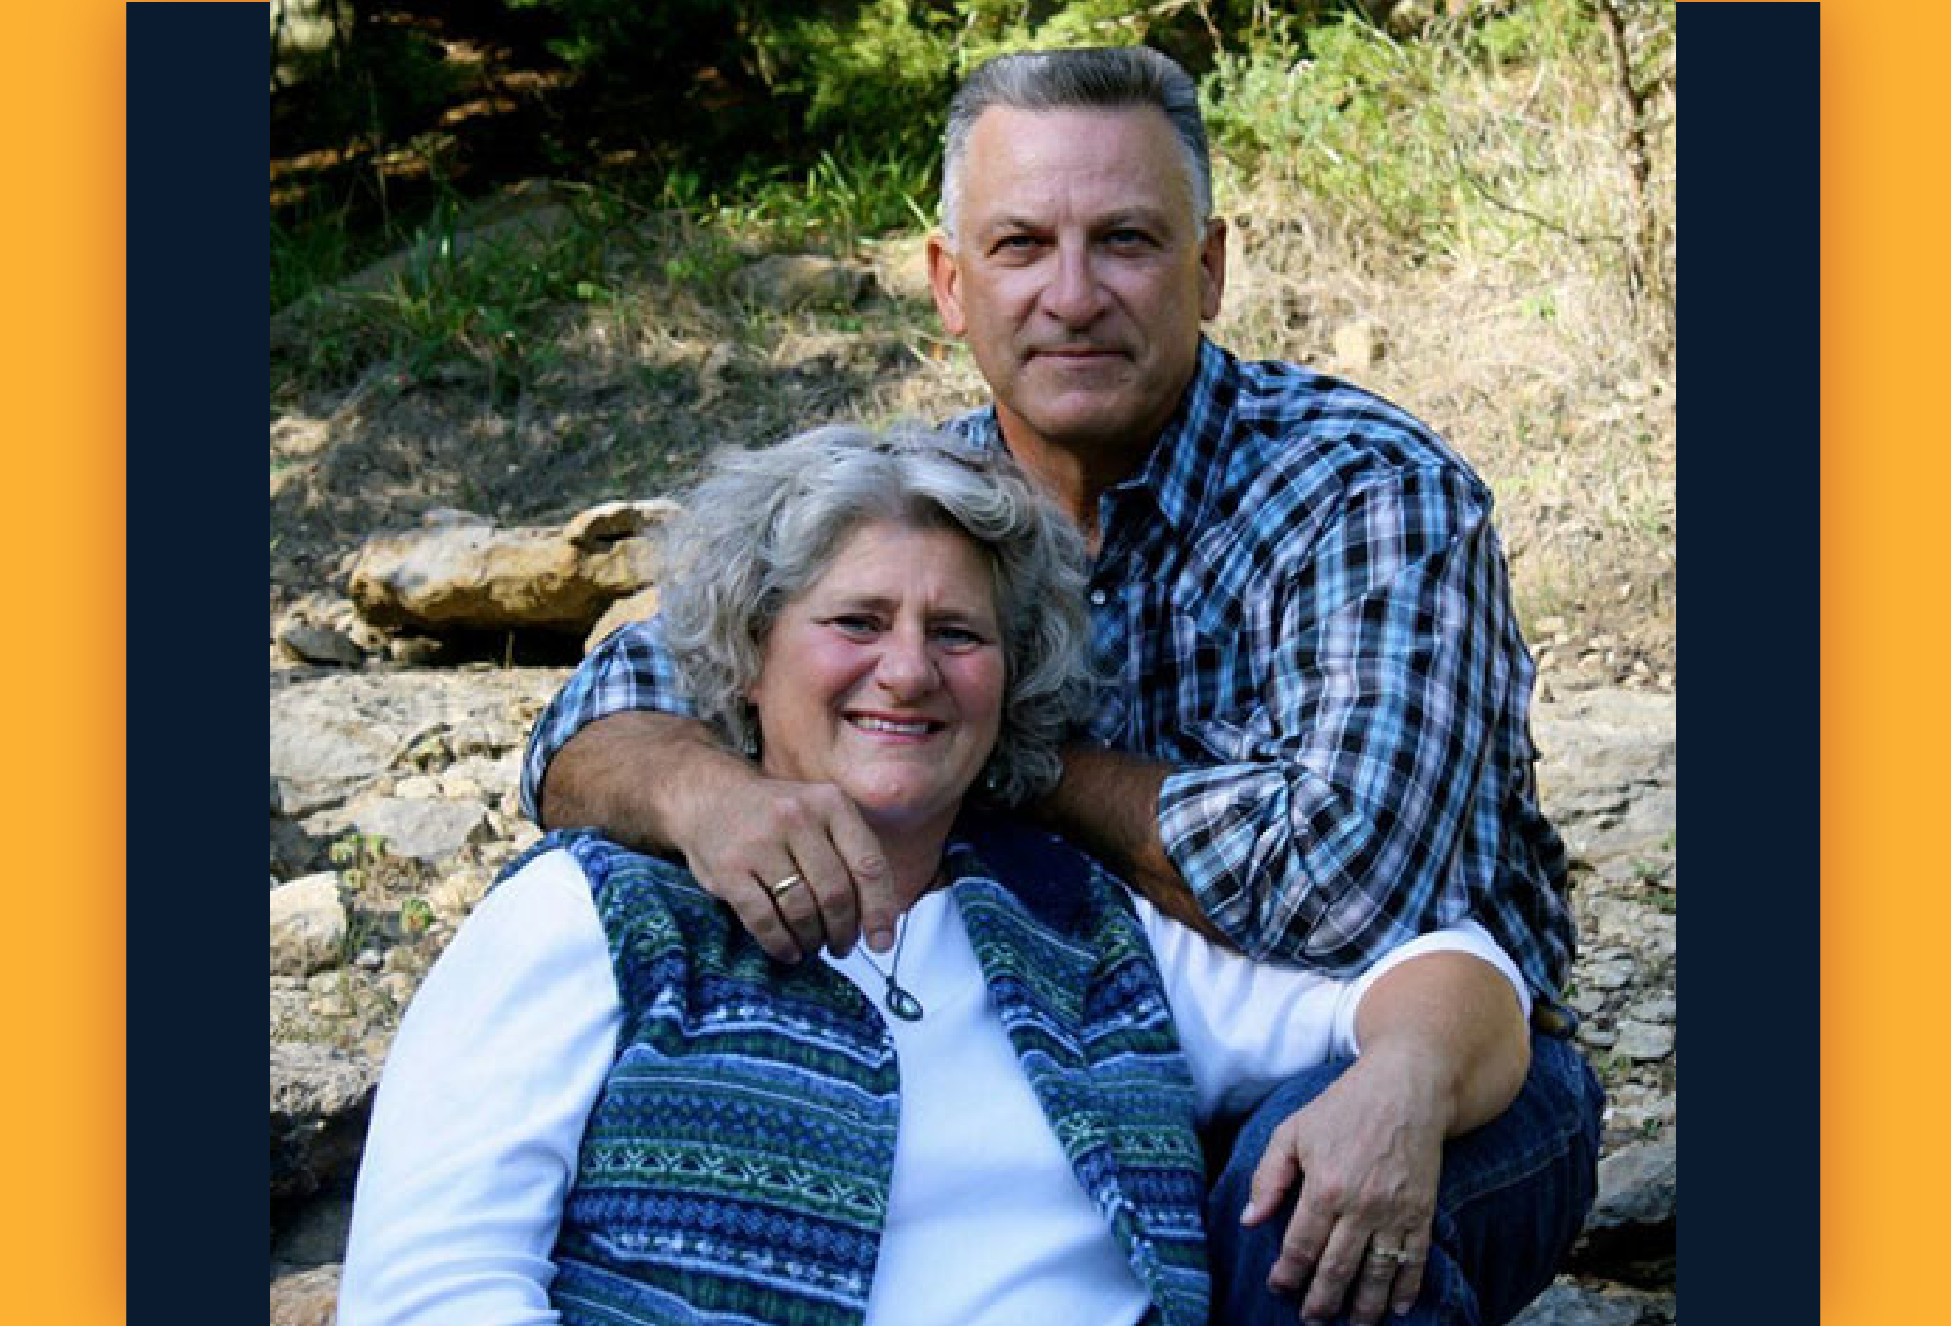 Scott and Sue Bachman of Bachman Cattle Farms and Bachman's Farm Store